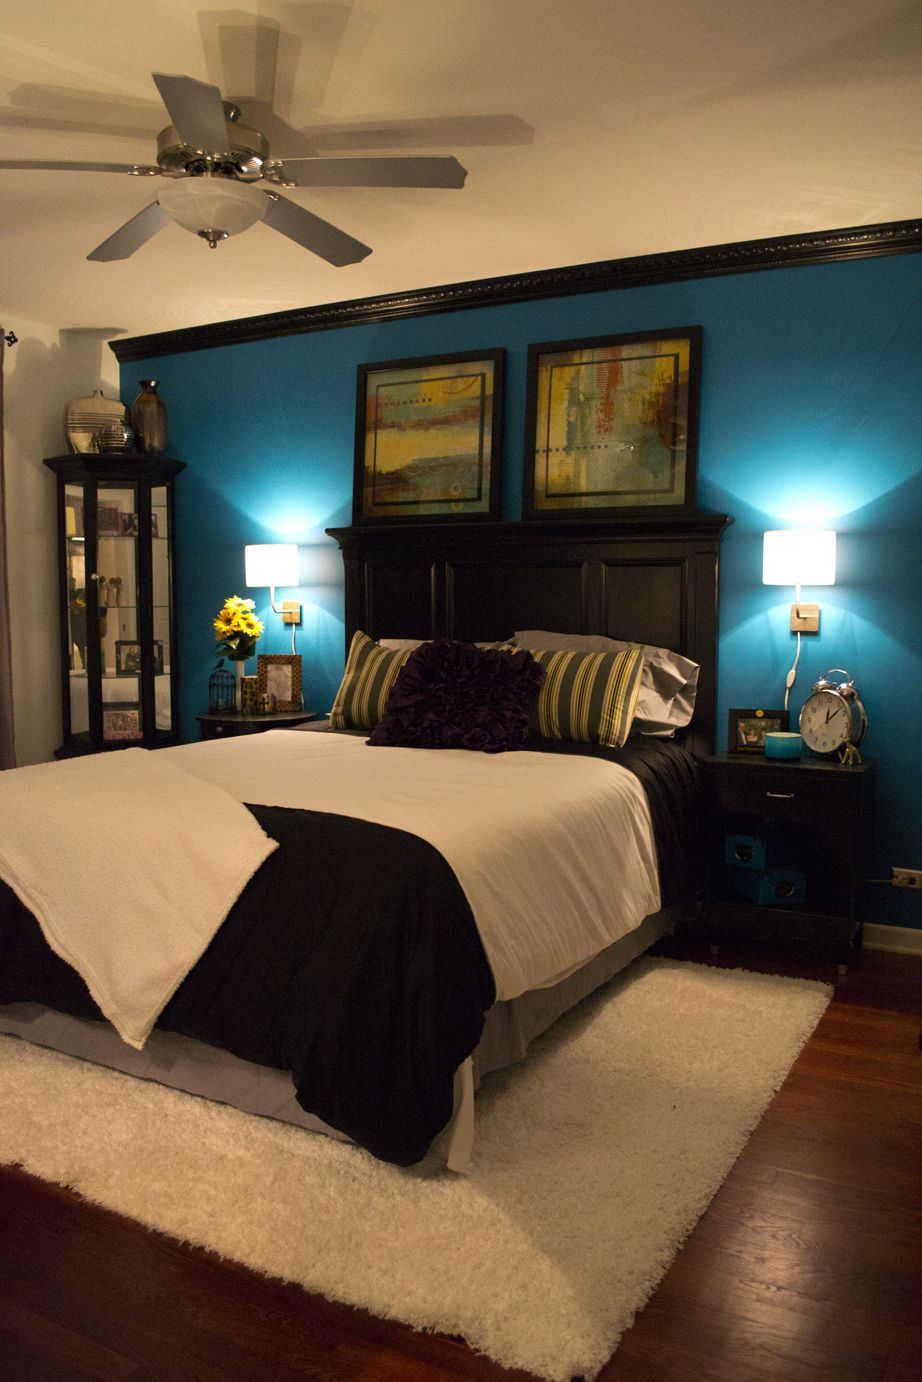 25 Teal Bedroom Designs You Will Love To Copy White Bedroom Design Teal Bedroom Designs Bedroom Layouts